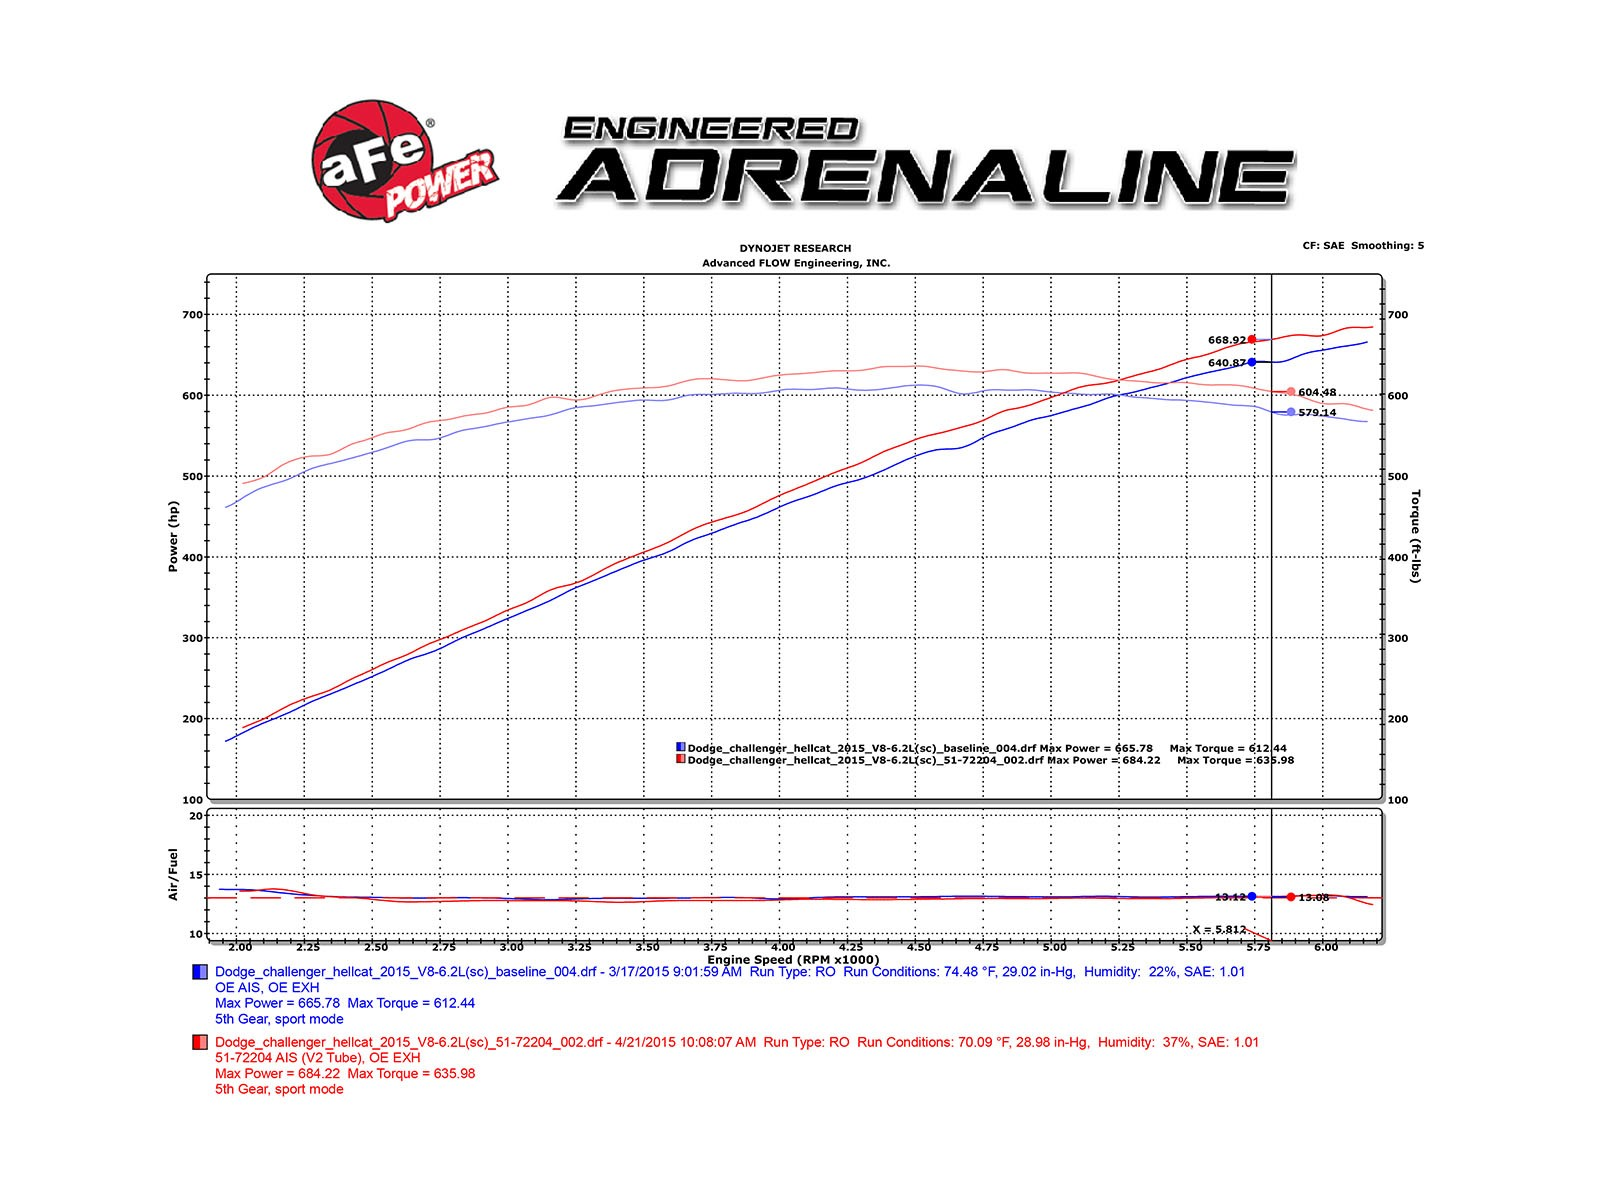 Momentum Gt Cold Air Intake System Afe Power 2015 Dodge Challenger Wiring Diagram Camera Adds Up To 11 Flow Increase 37 Hp Horsepower 33 Lbs X Ft Torque Max Gains Charger